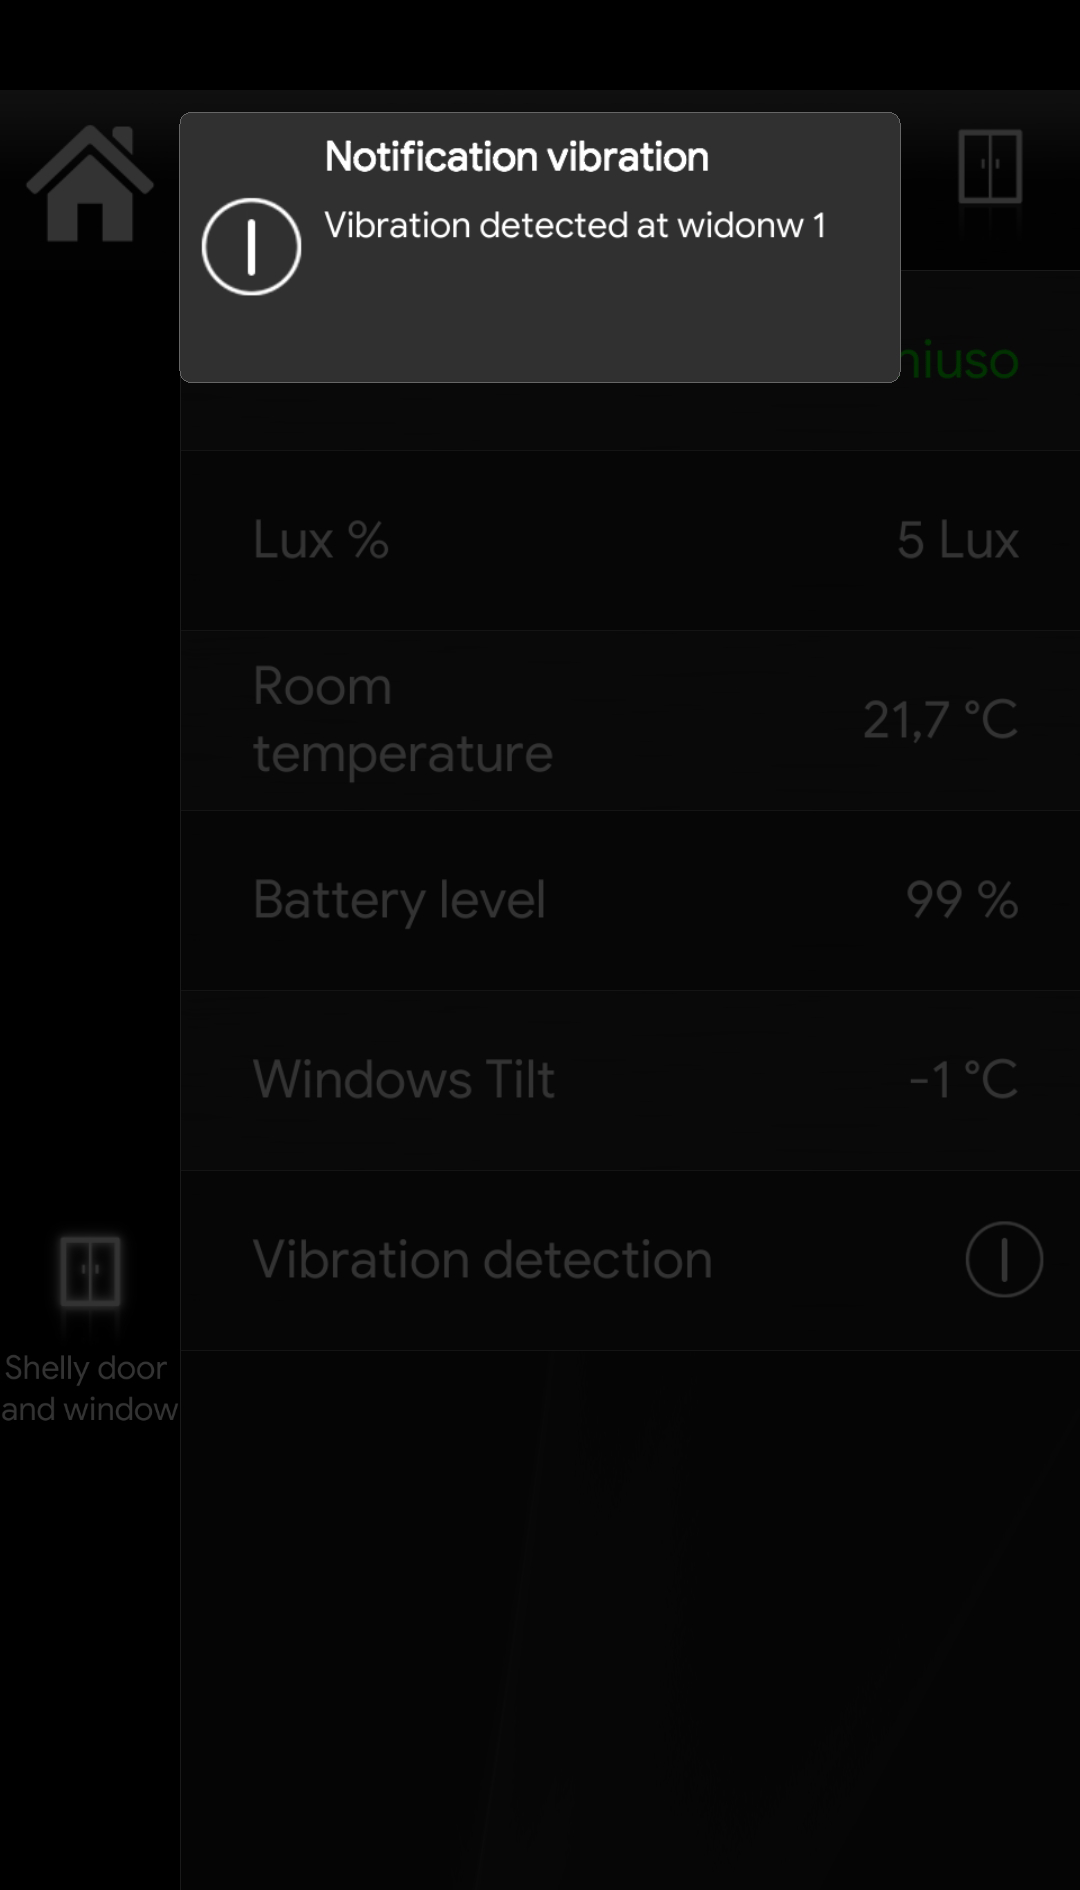 Here displayed how the project configuration is inside the Home automation app EVE Remote Plus when the shelly device has detected a vibration